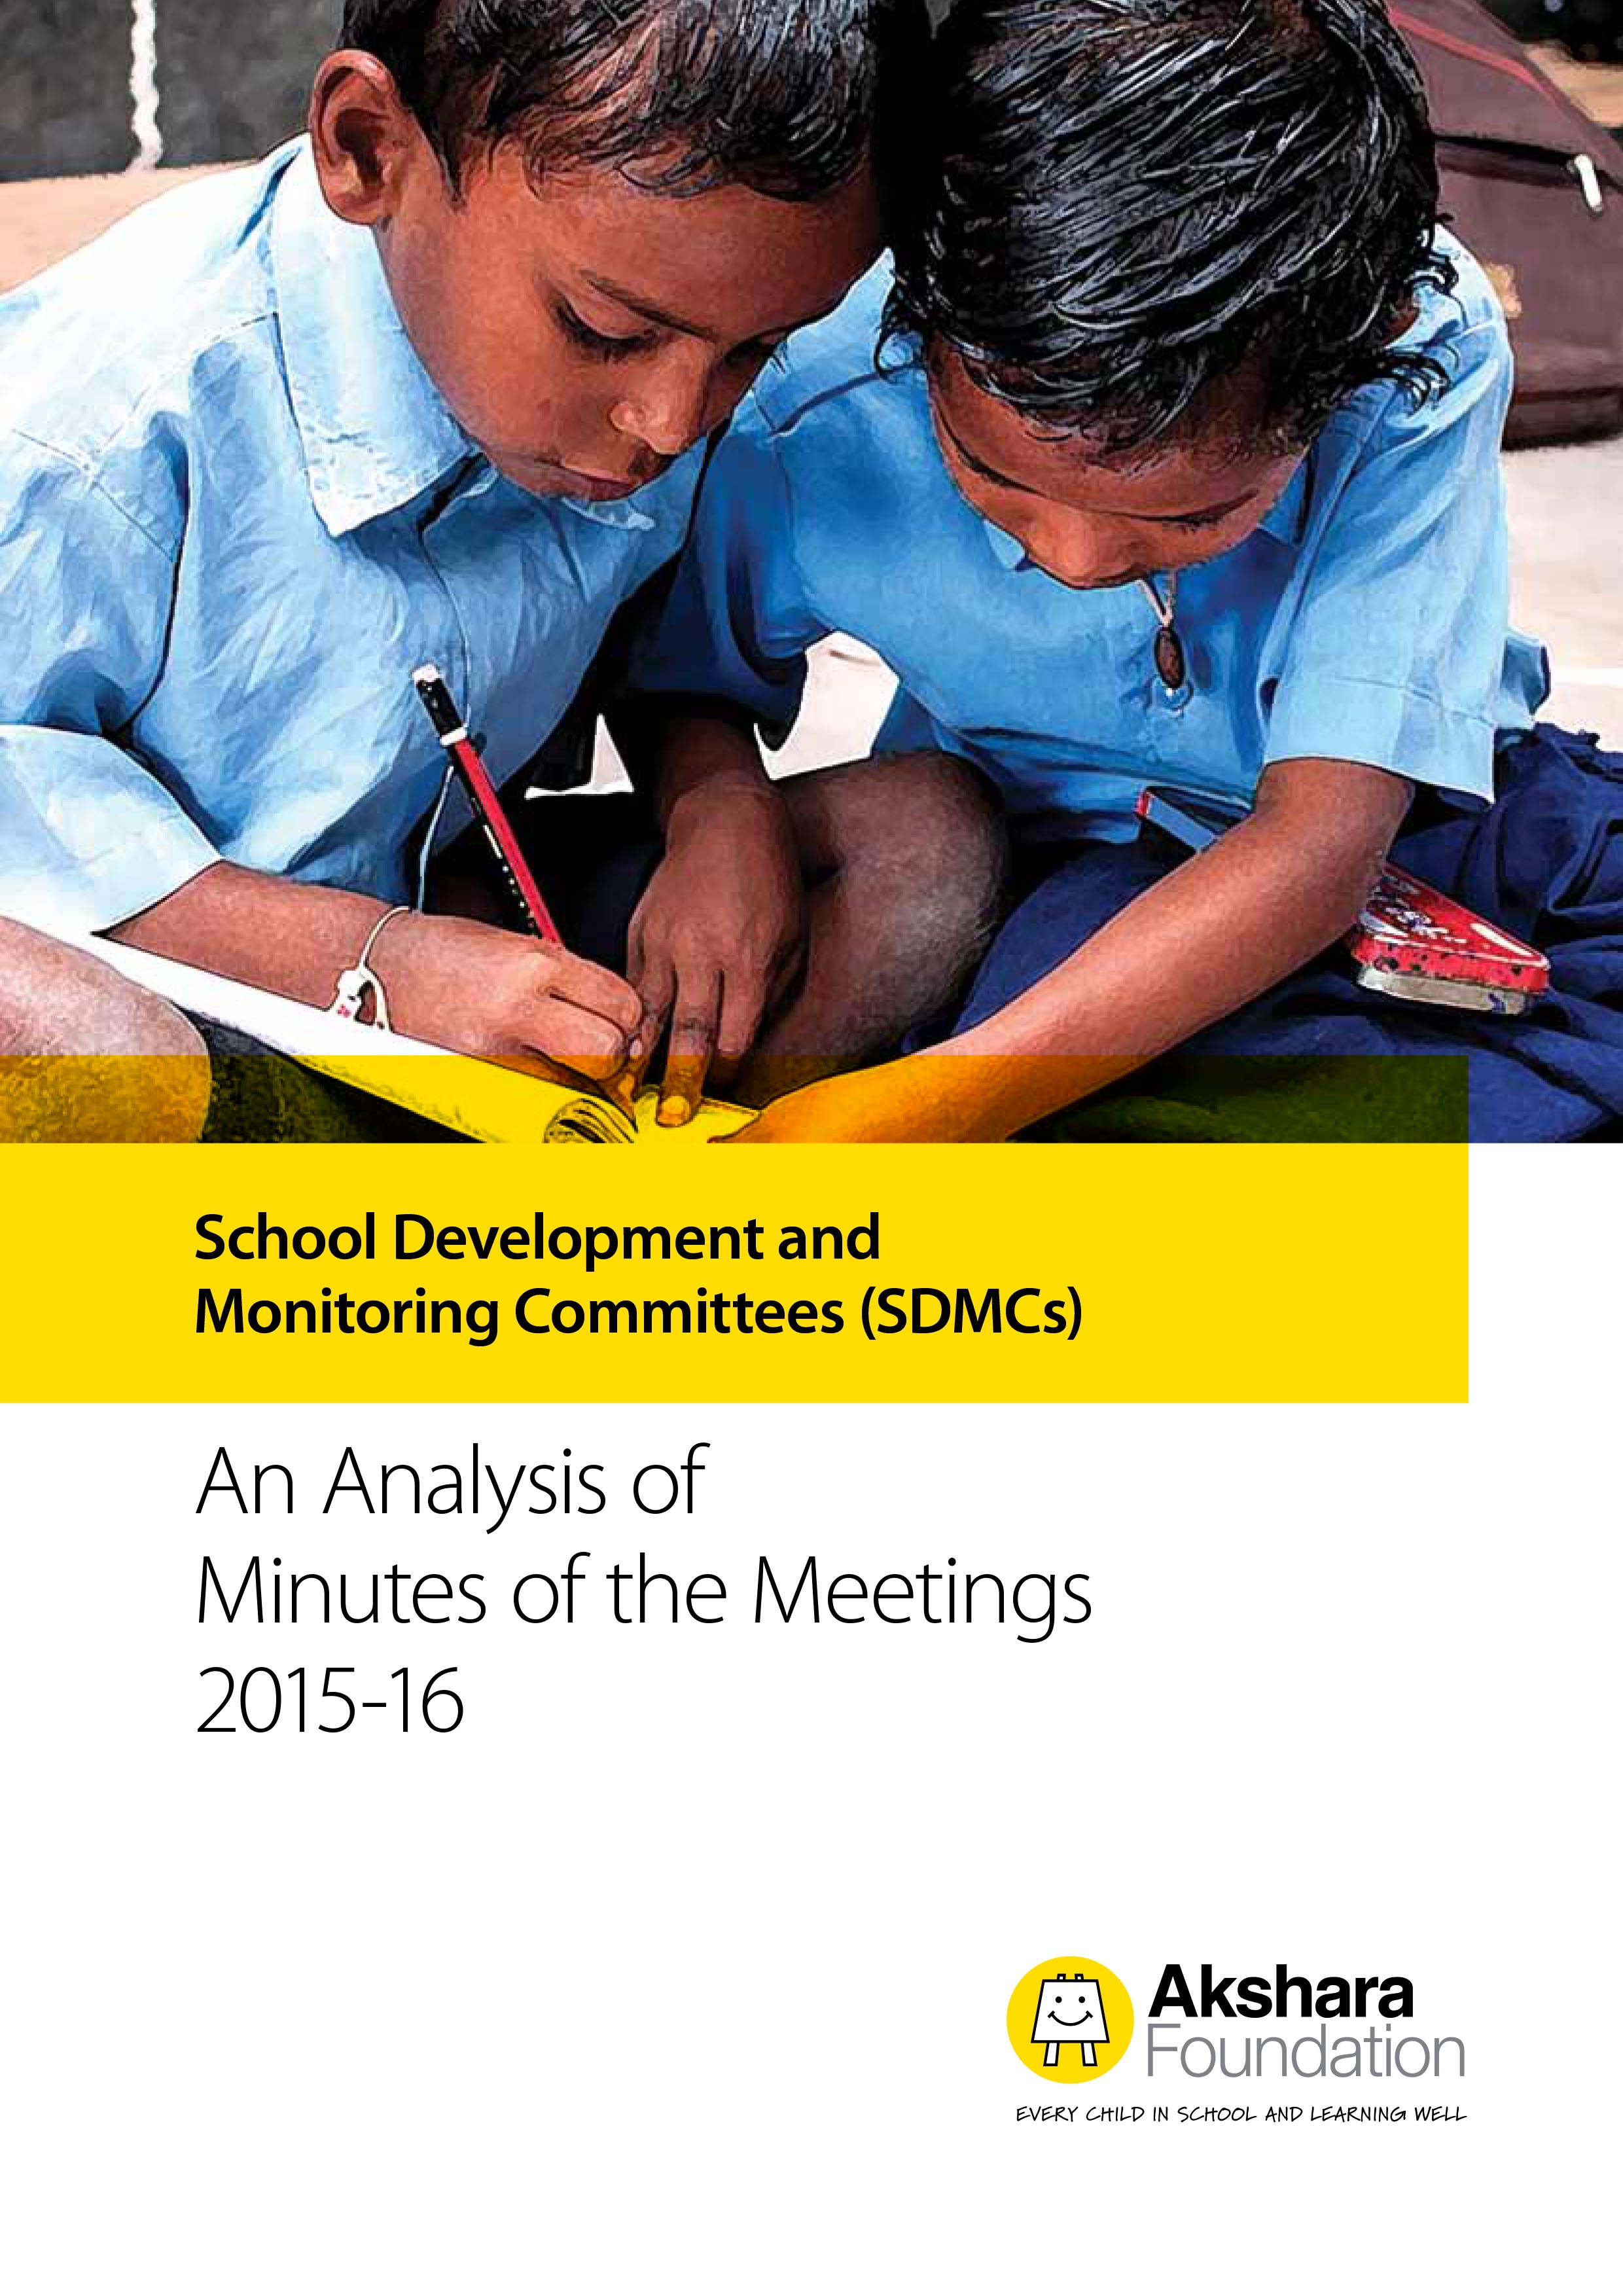 School Development and Monitoring Committees - An Analysis of Minutes of the Meetings 2015-16